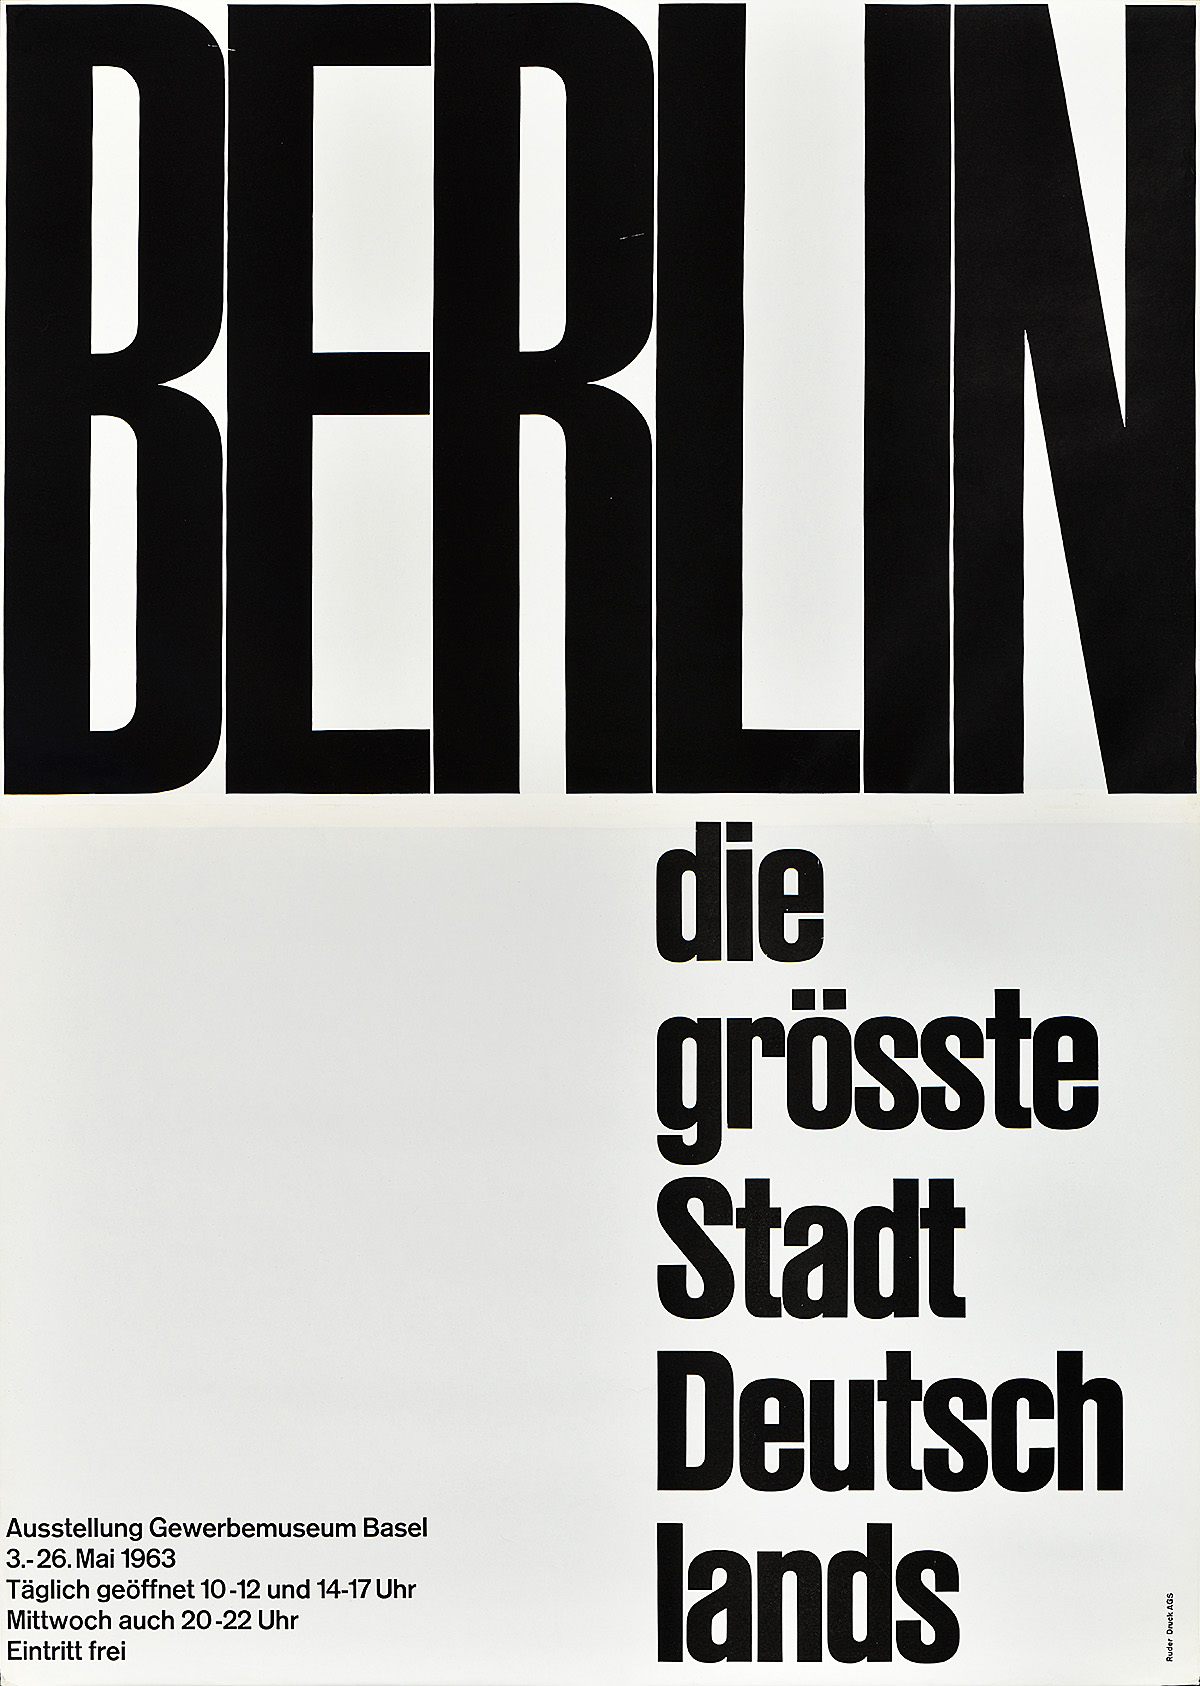 type-based poster of the word Berlin in black fitted to a white page horizontally